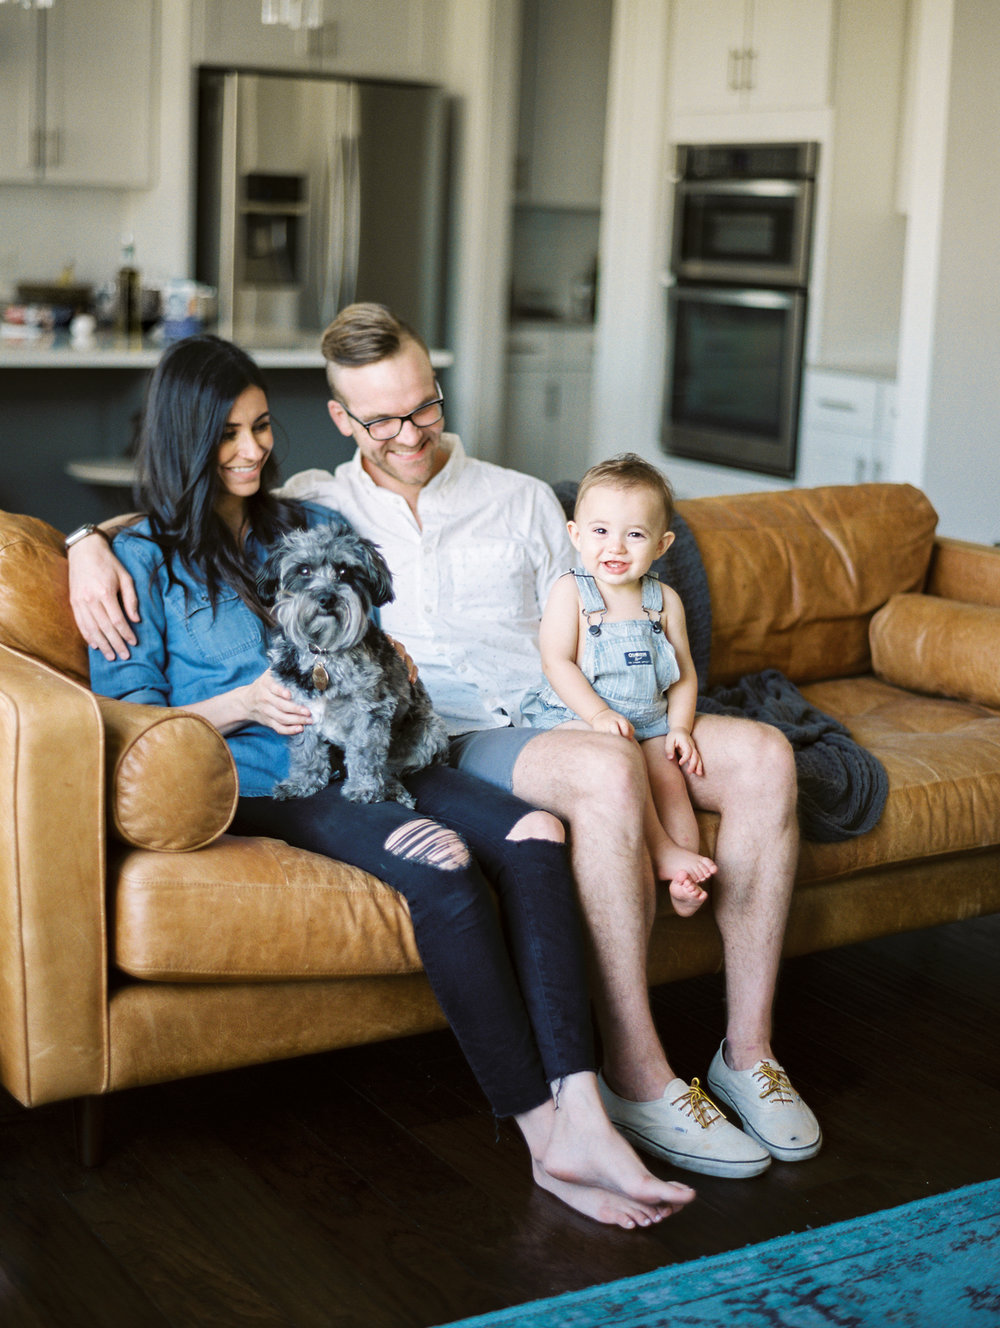 Lynchburg_DC_family_wedding_film_photographer_white_kitchen_baby_announcement-8.jpg